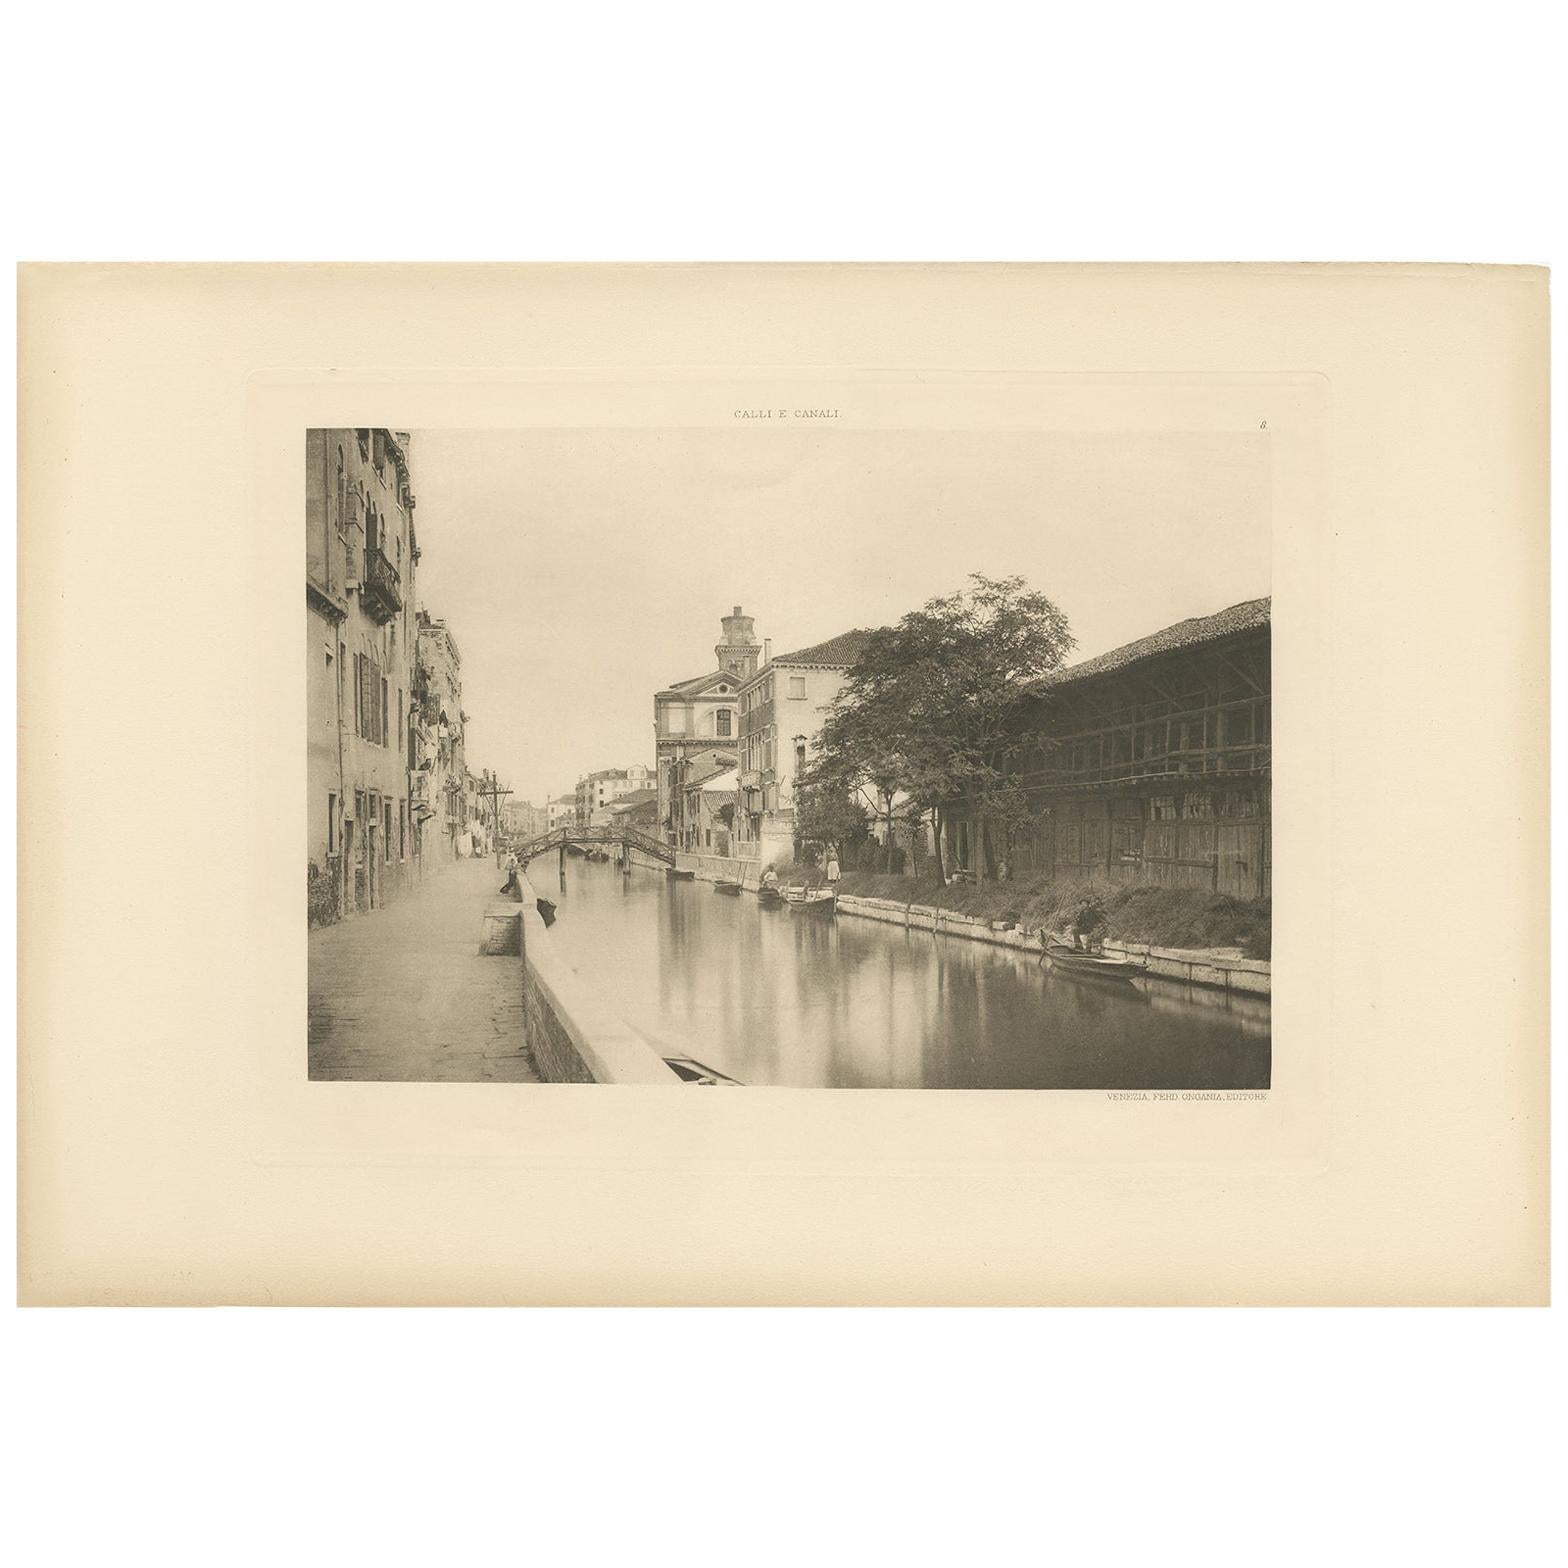 Pl. 8 Antique Print of S. Jerome's Canal in Venice, 'circa 1890'